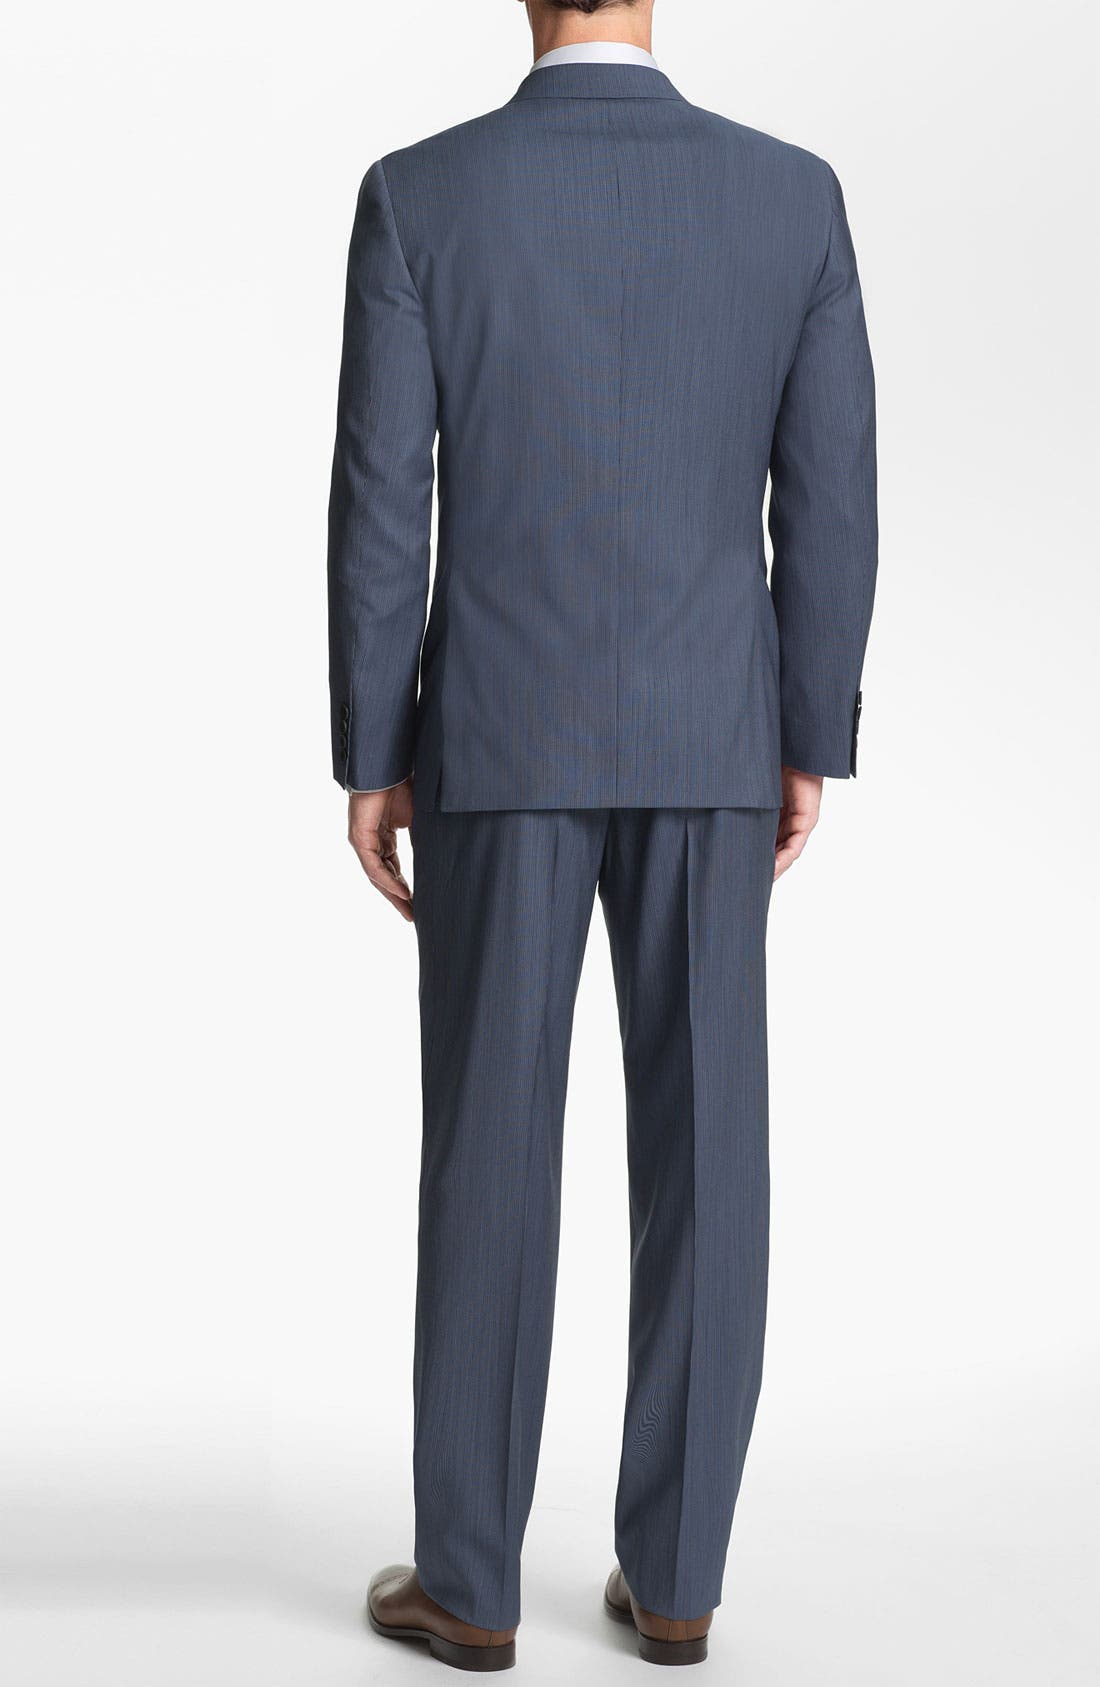 Alternate Image 3  - Joseph Abboud 'Profile' Trim Fit Stripe Wool Suit